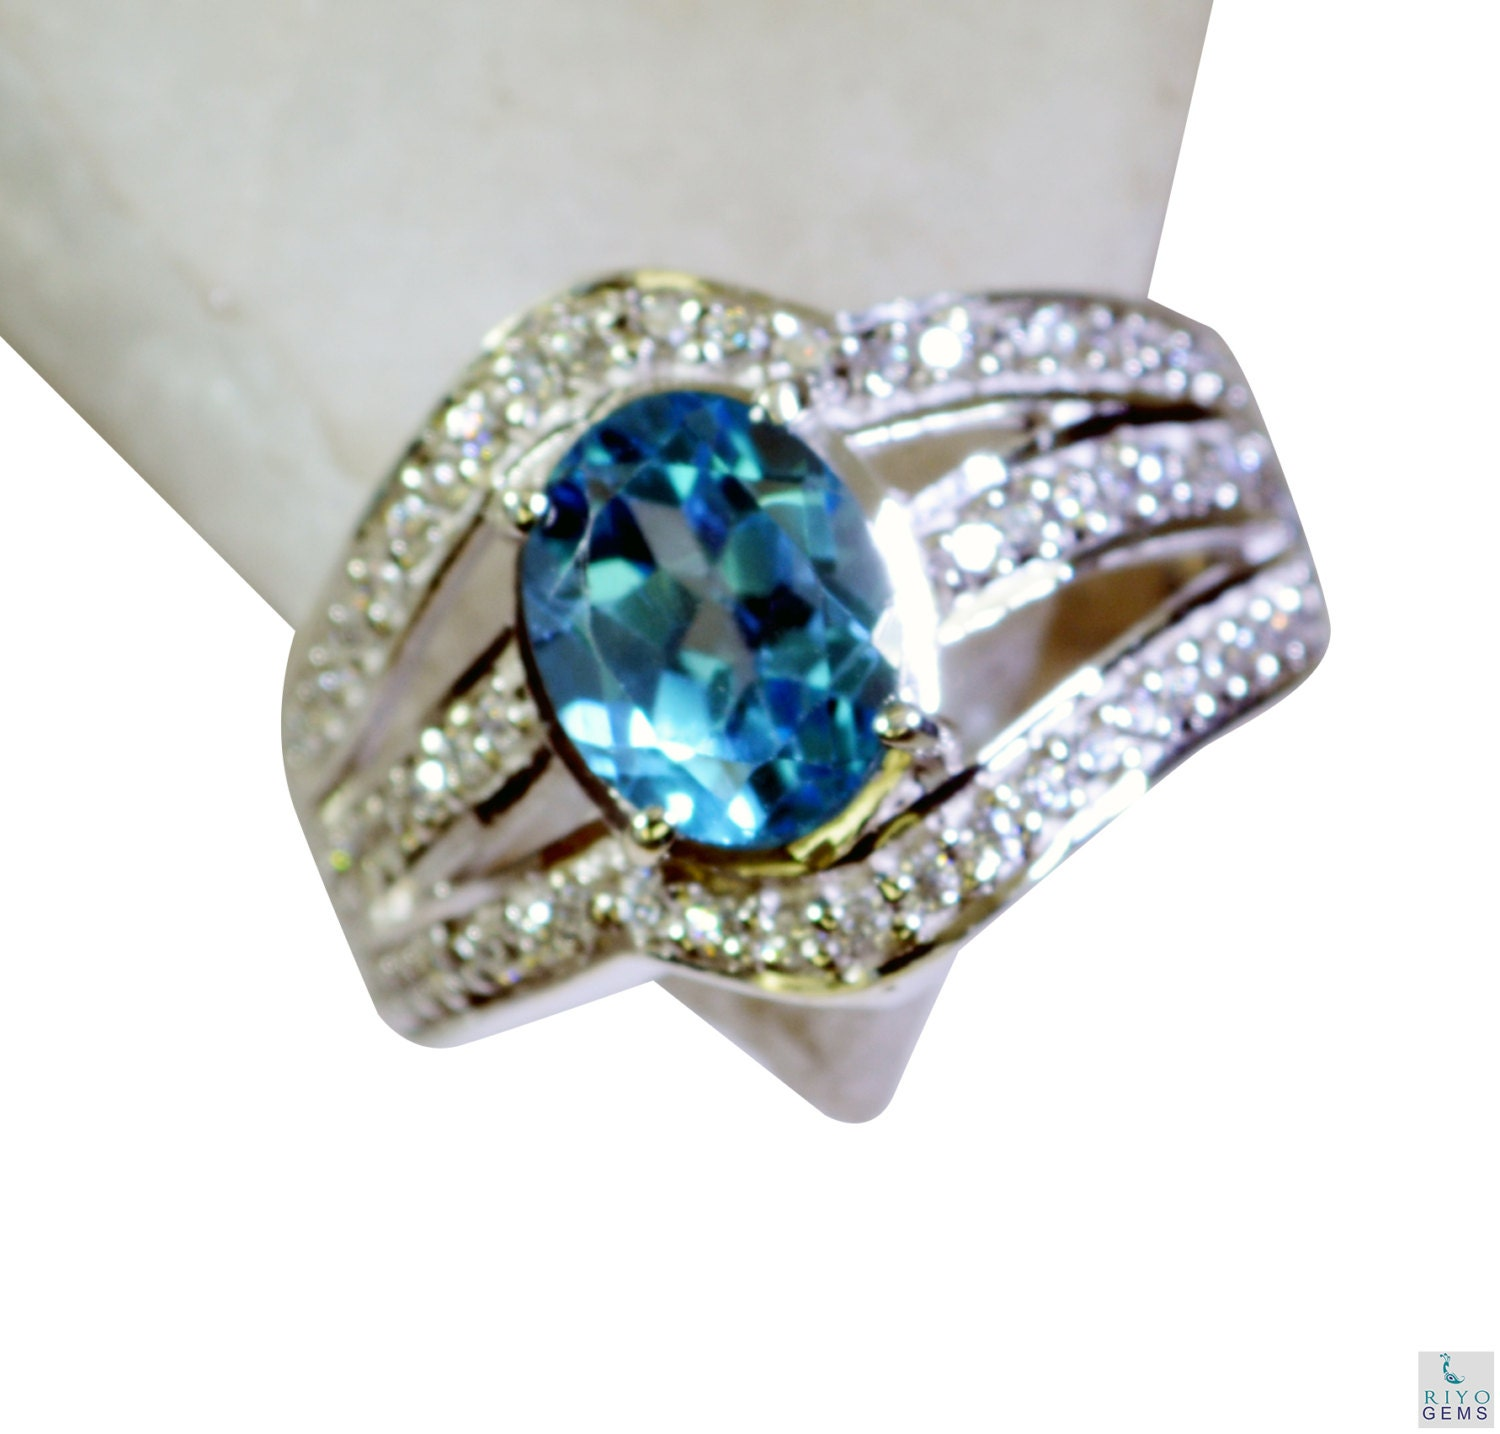 They have some of my Tacori rings that I paid three times as much plus s/h and taxes on the Q They are going fast. I just let some things go and there were only a few left.